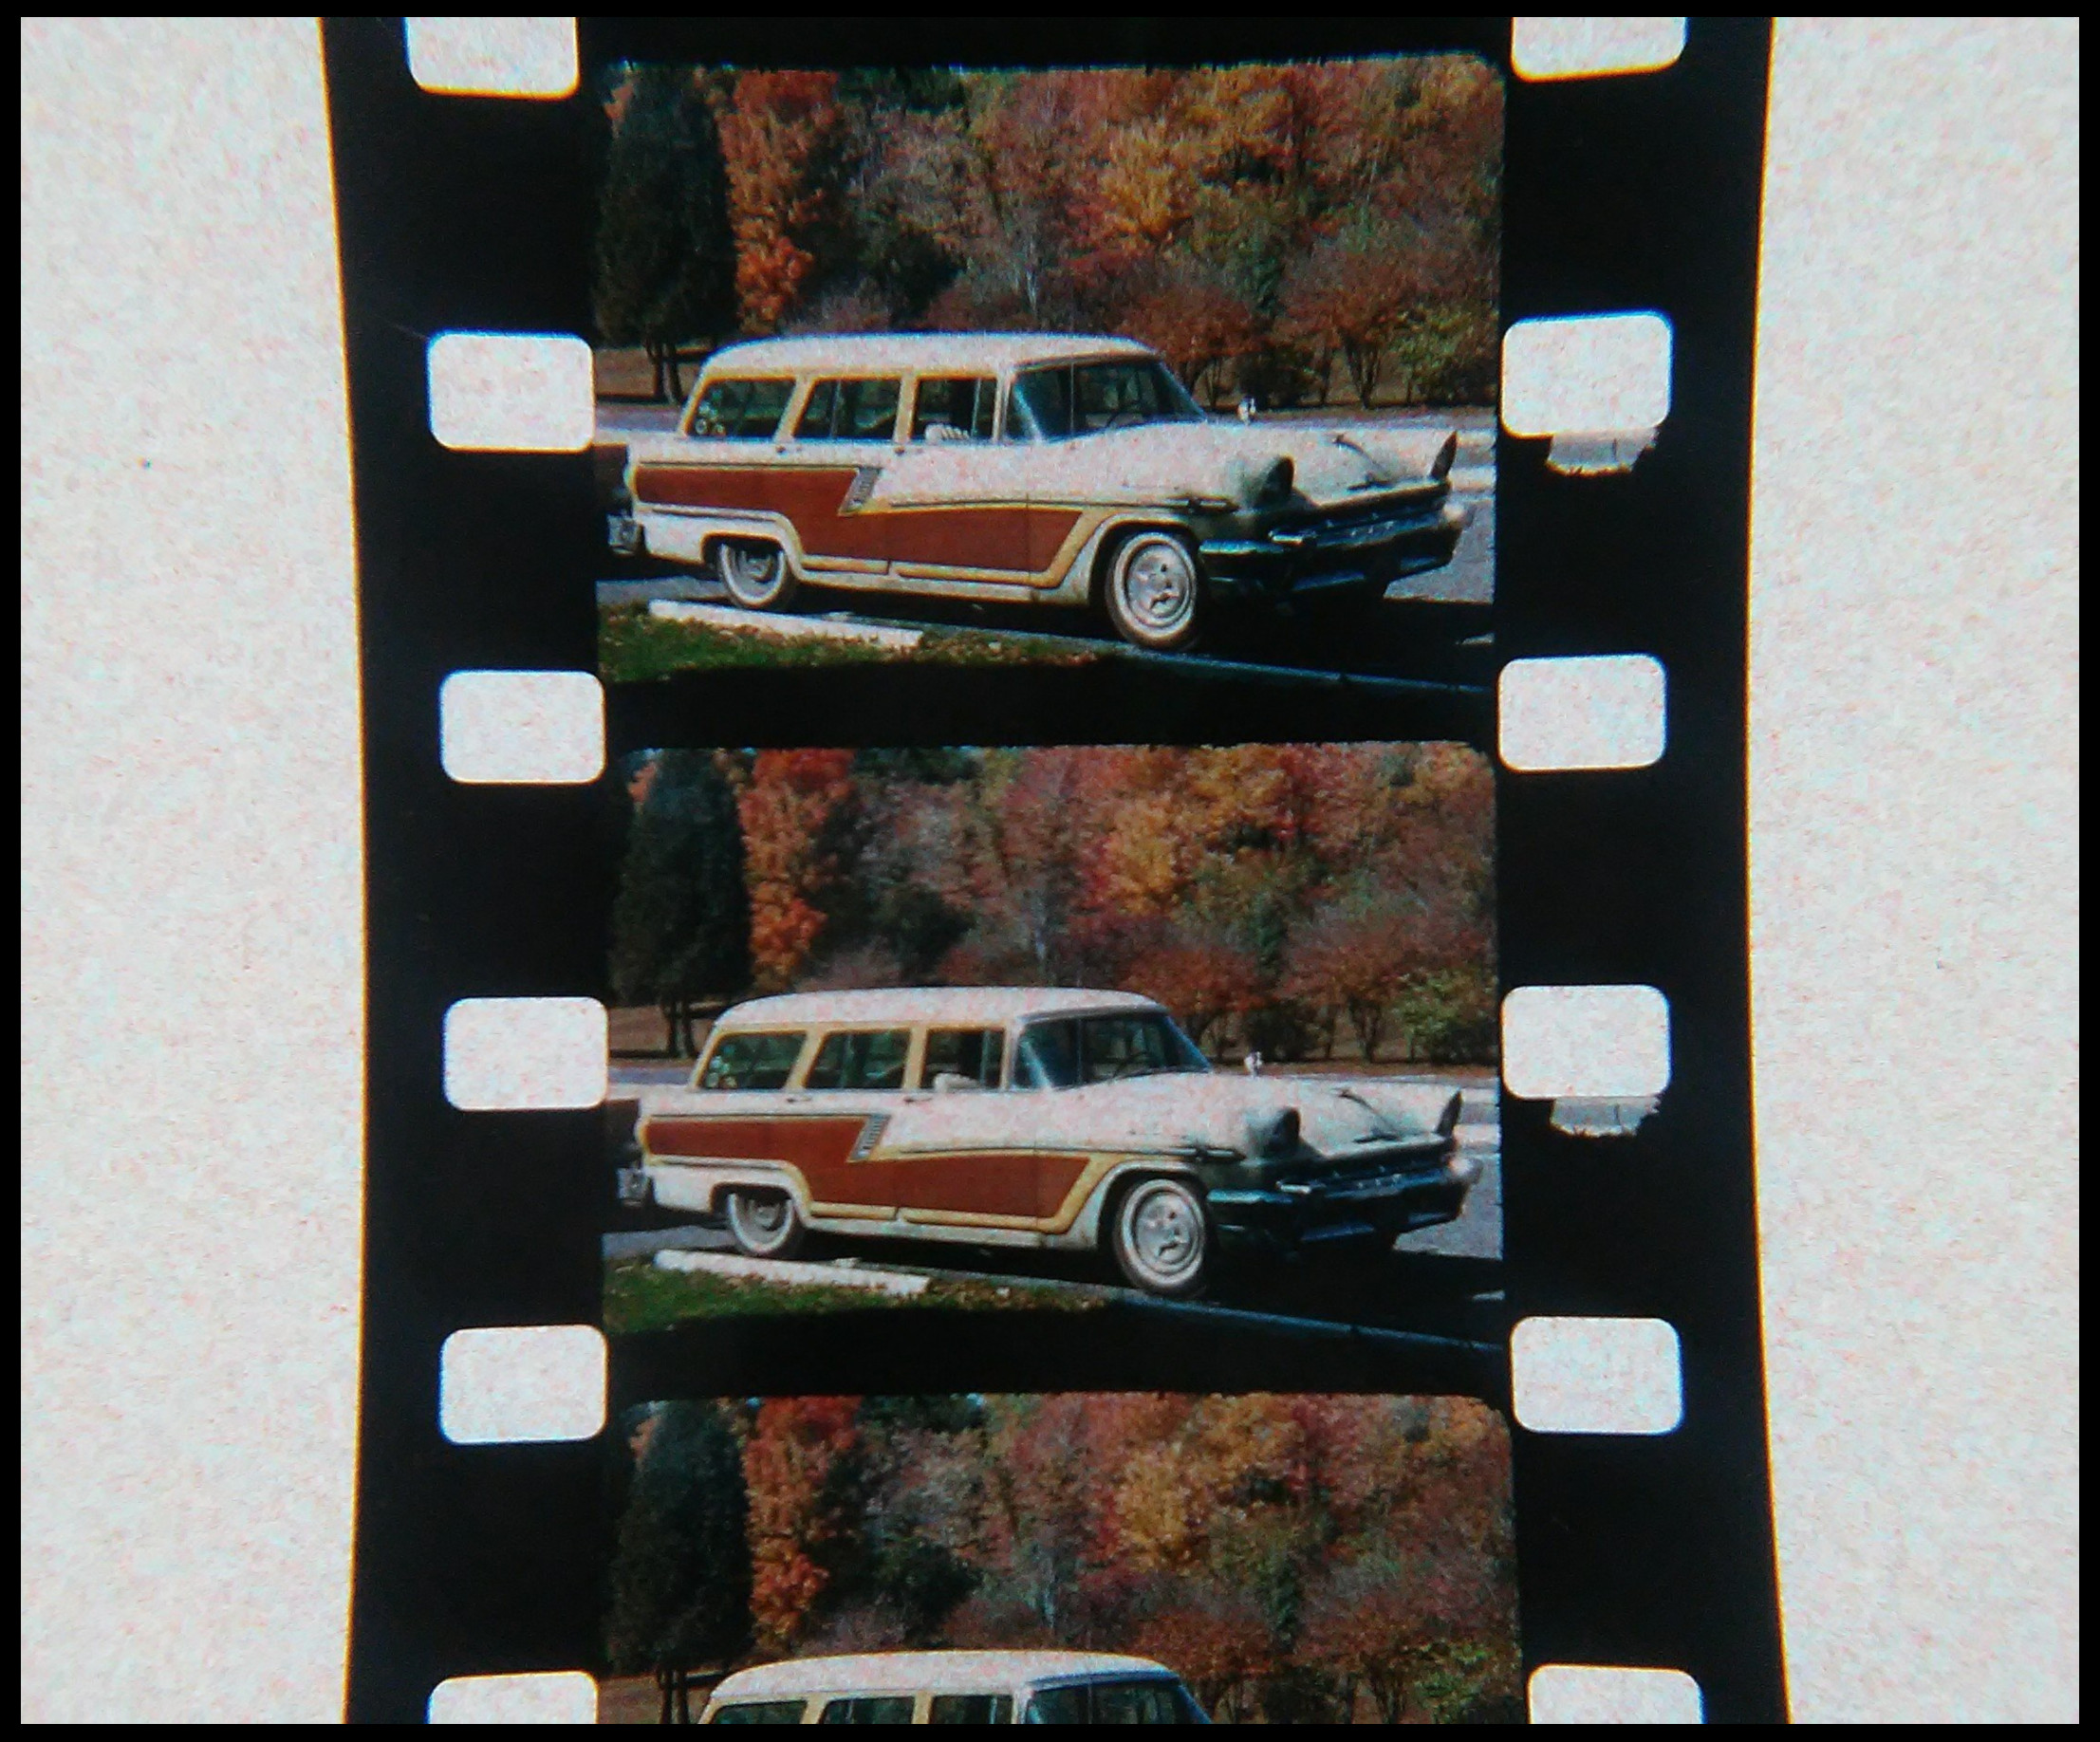 Close-up photograph of 16mm film strips with image of 1950s station wagon in an autumn wood